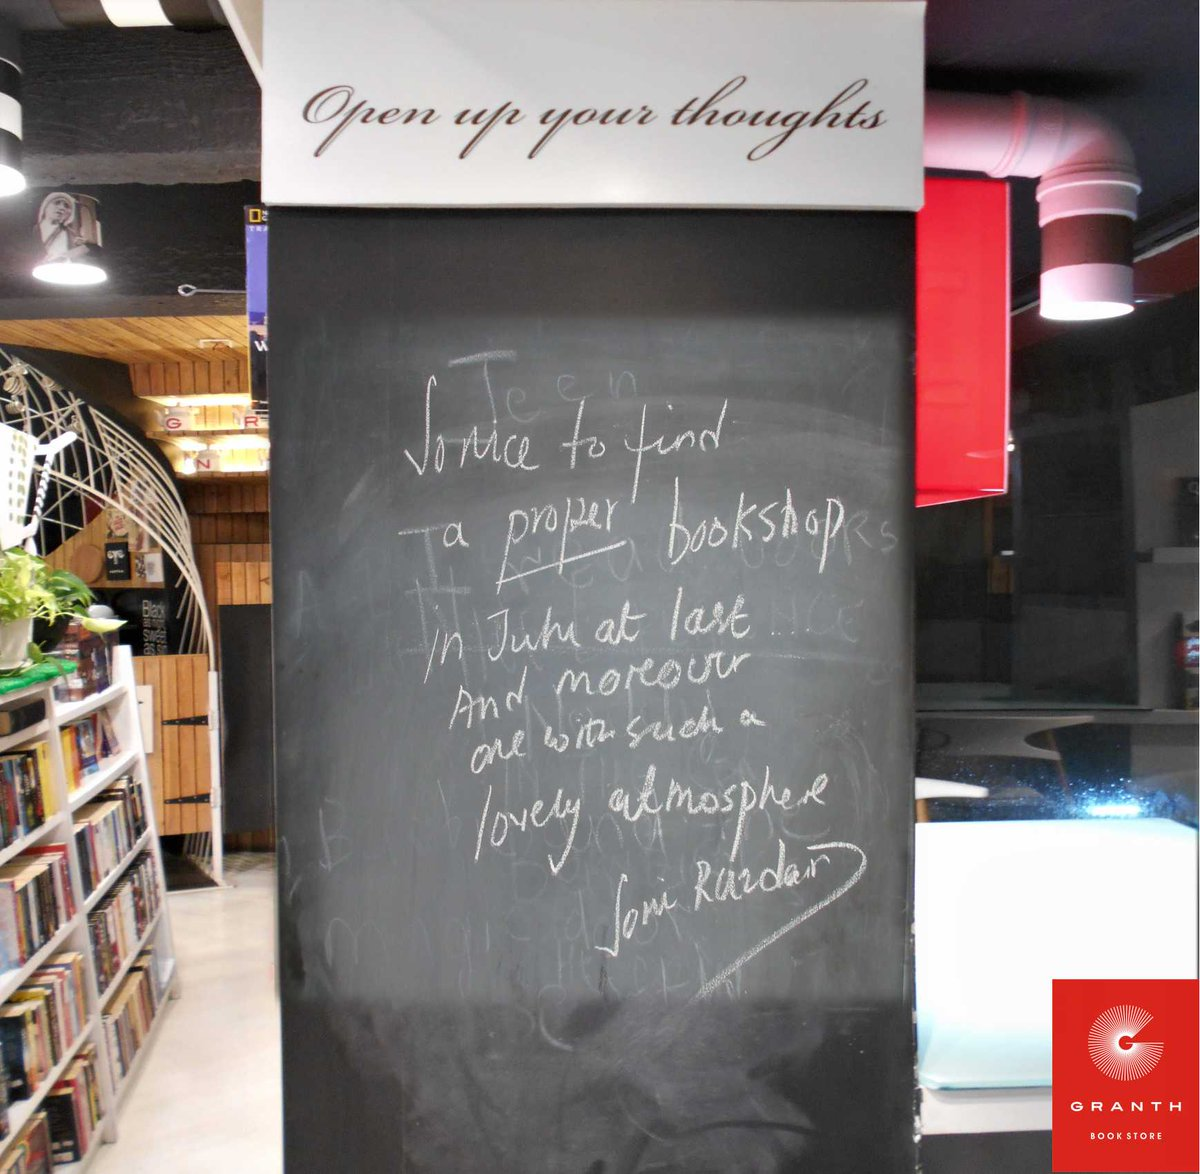 Celebrity @Soni_Razdan  left this testimonial at #Granth back in time. We are walking down the memory lane today! #bookstore #books #words<br>http://pic.twitter.com/lQE5hcPyFe